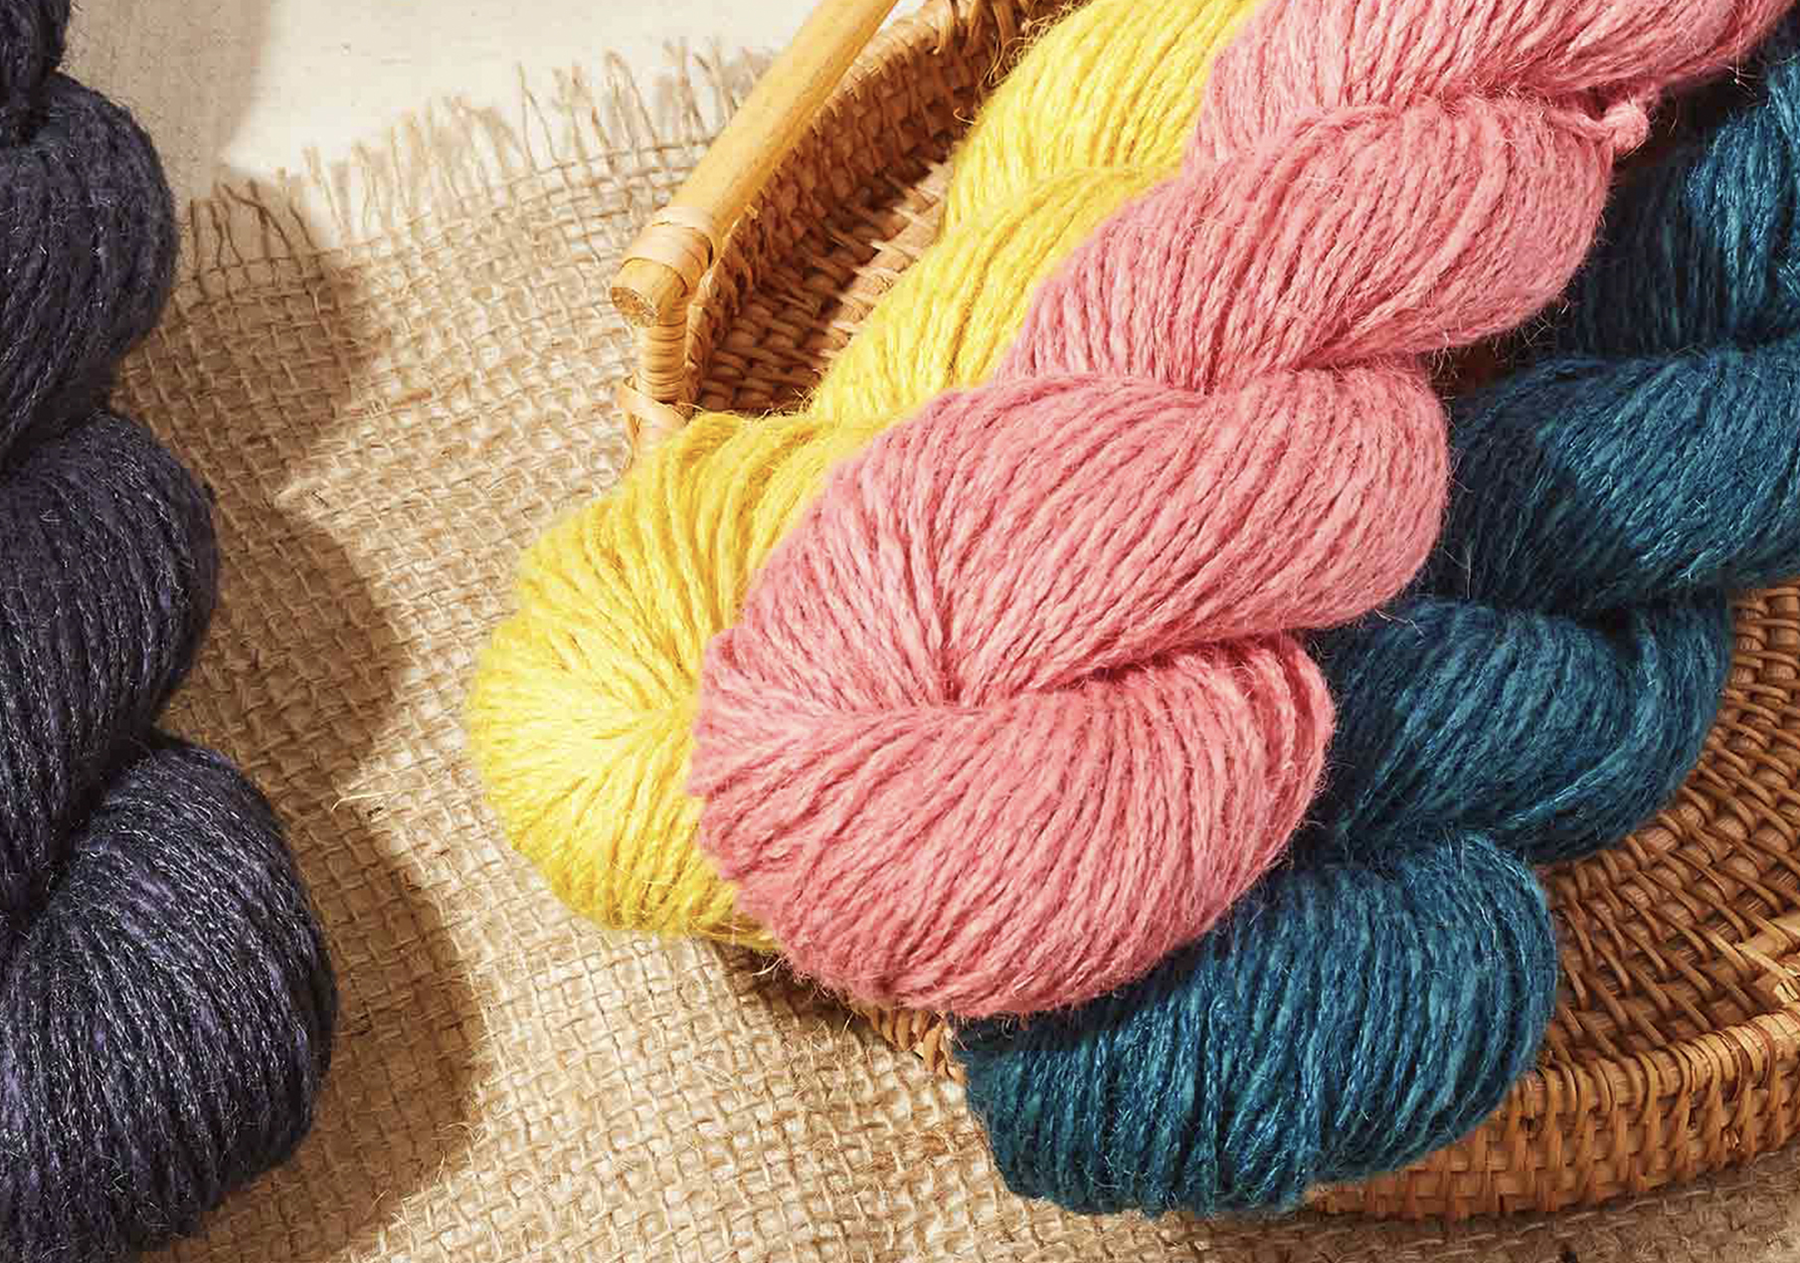 5 things you didn't know about knitting and crochet